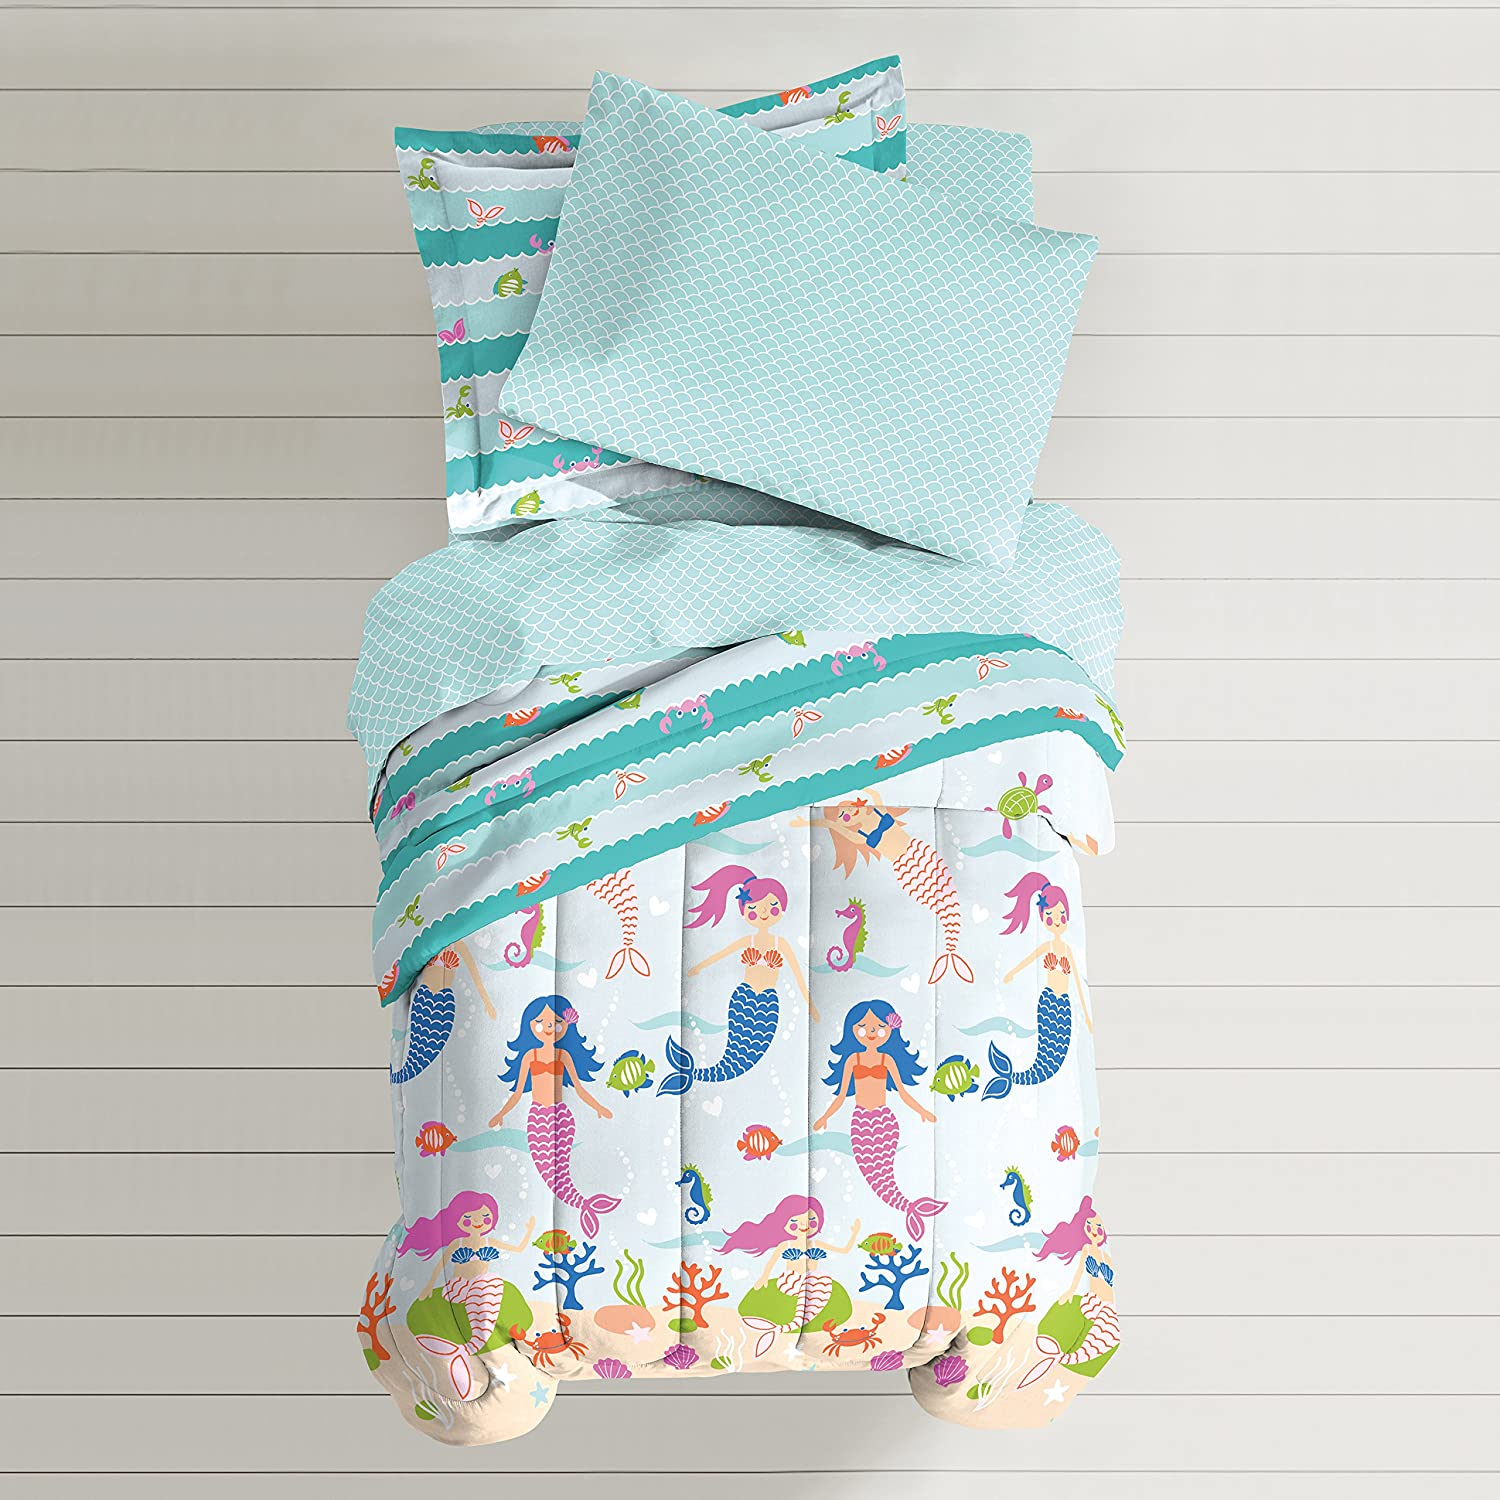 The Best Kids Bedding Sets: Reviews & Buying Guide 2